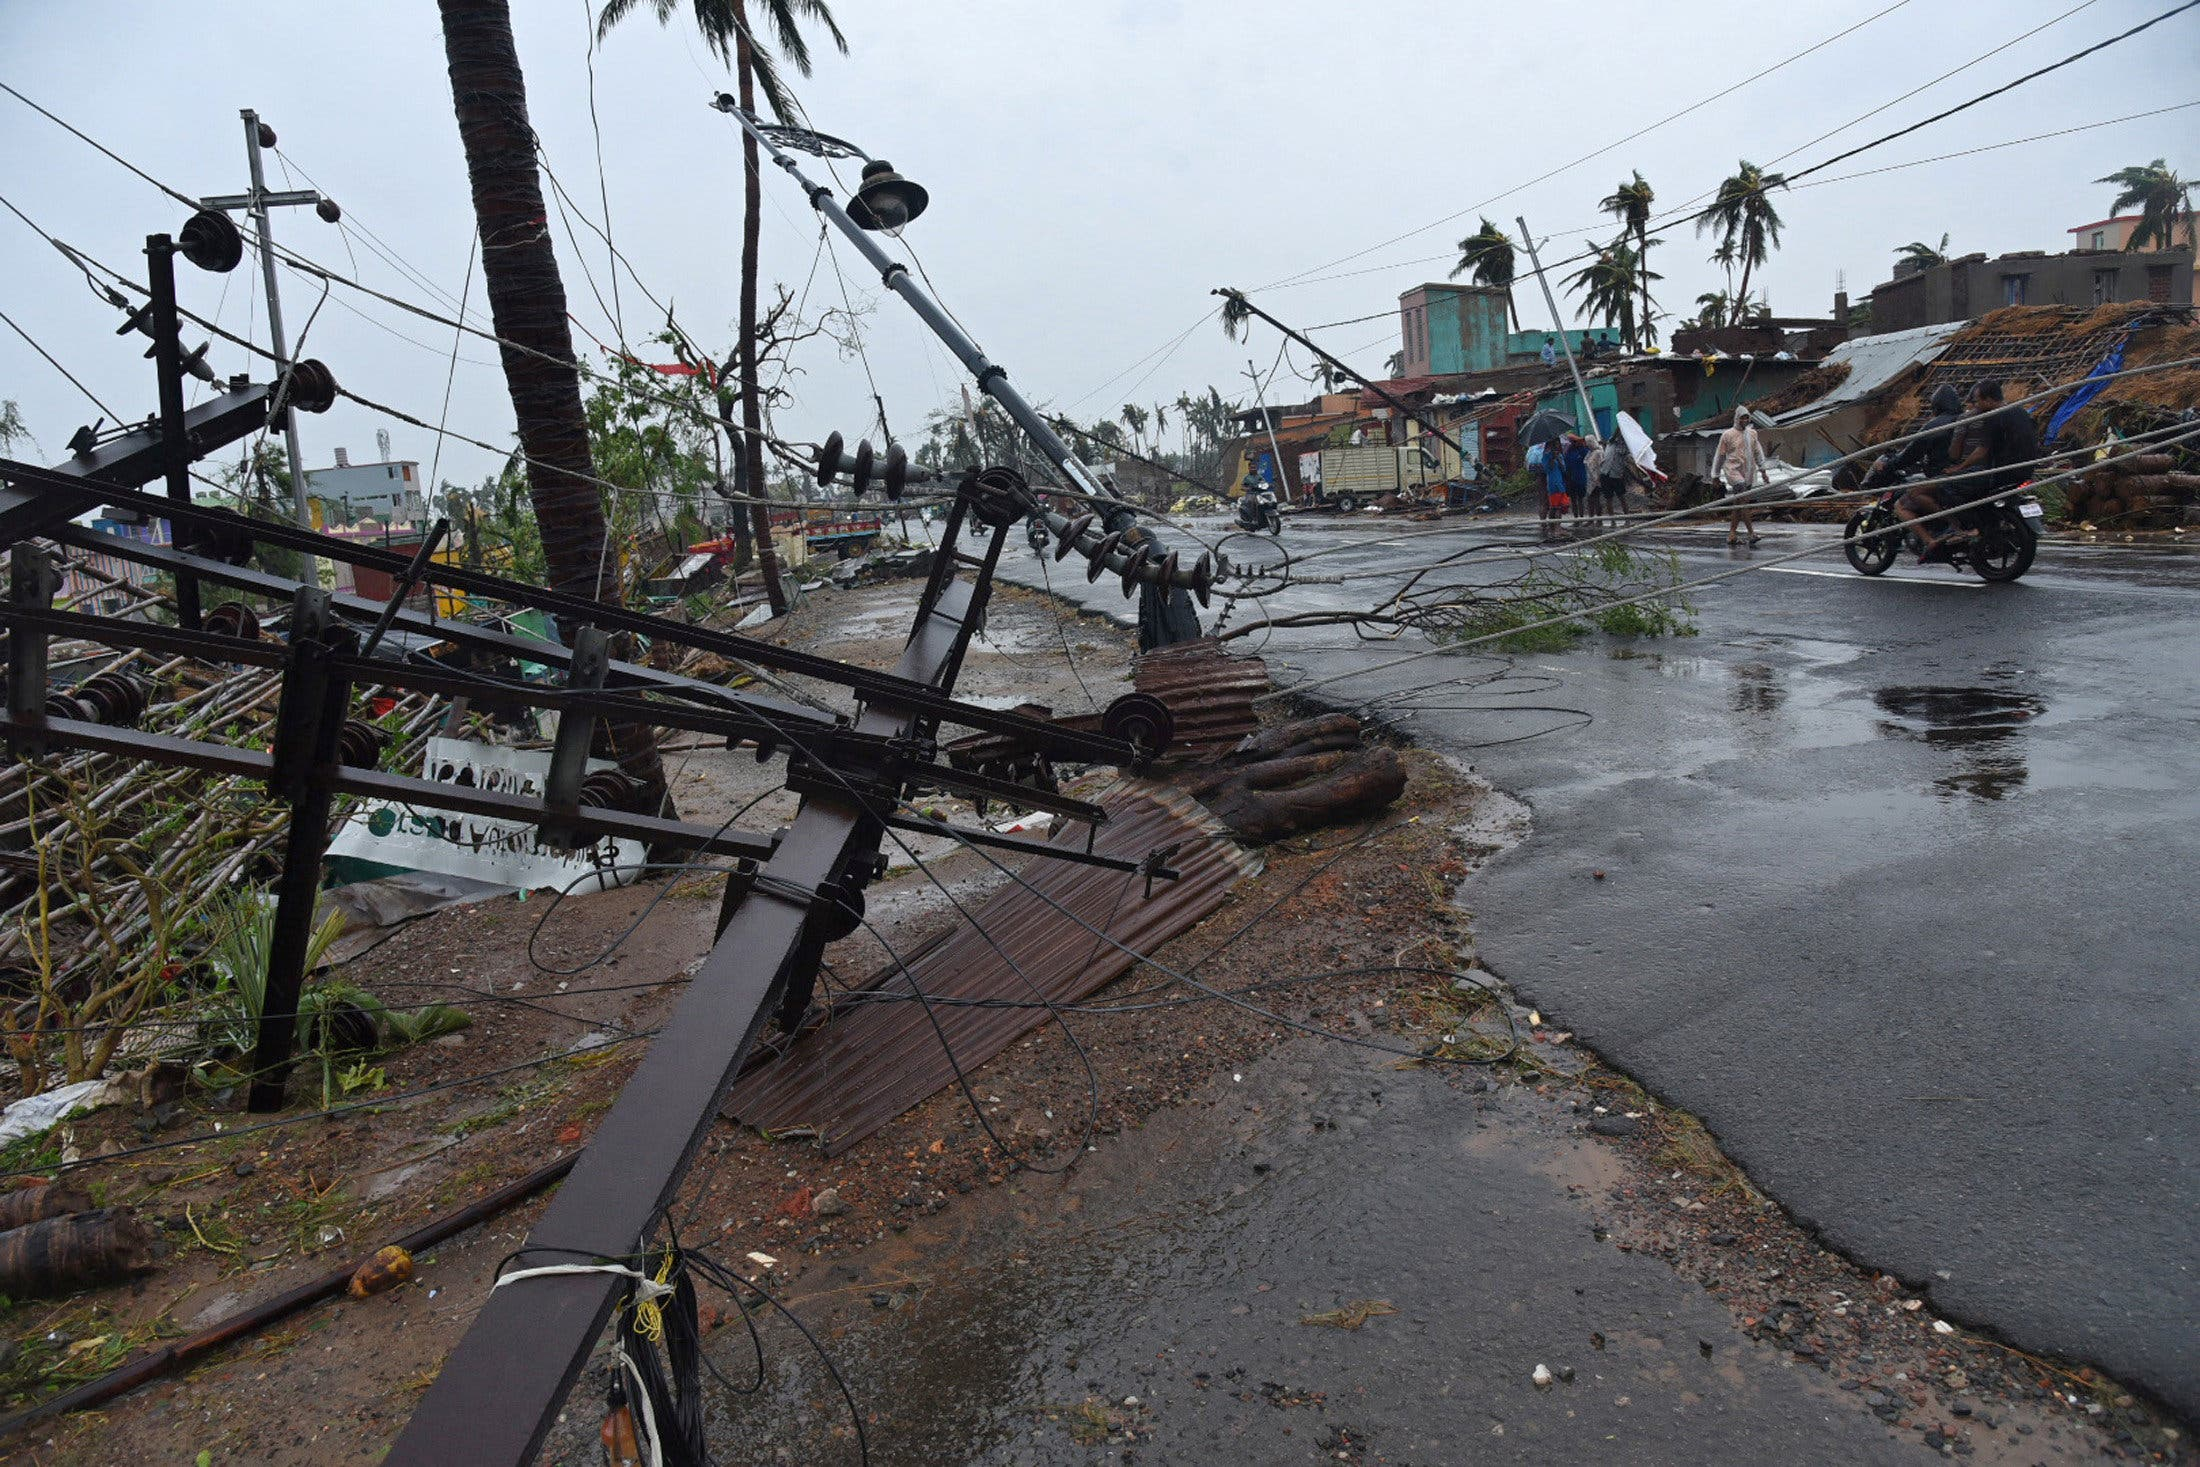 Fallen electric poles are pictured after Cyclone Fani hit Puri, india (reuters)